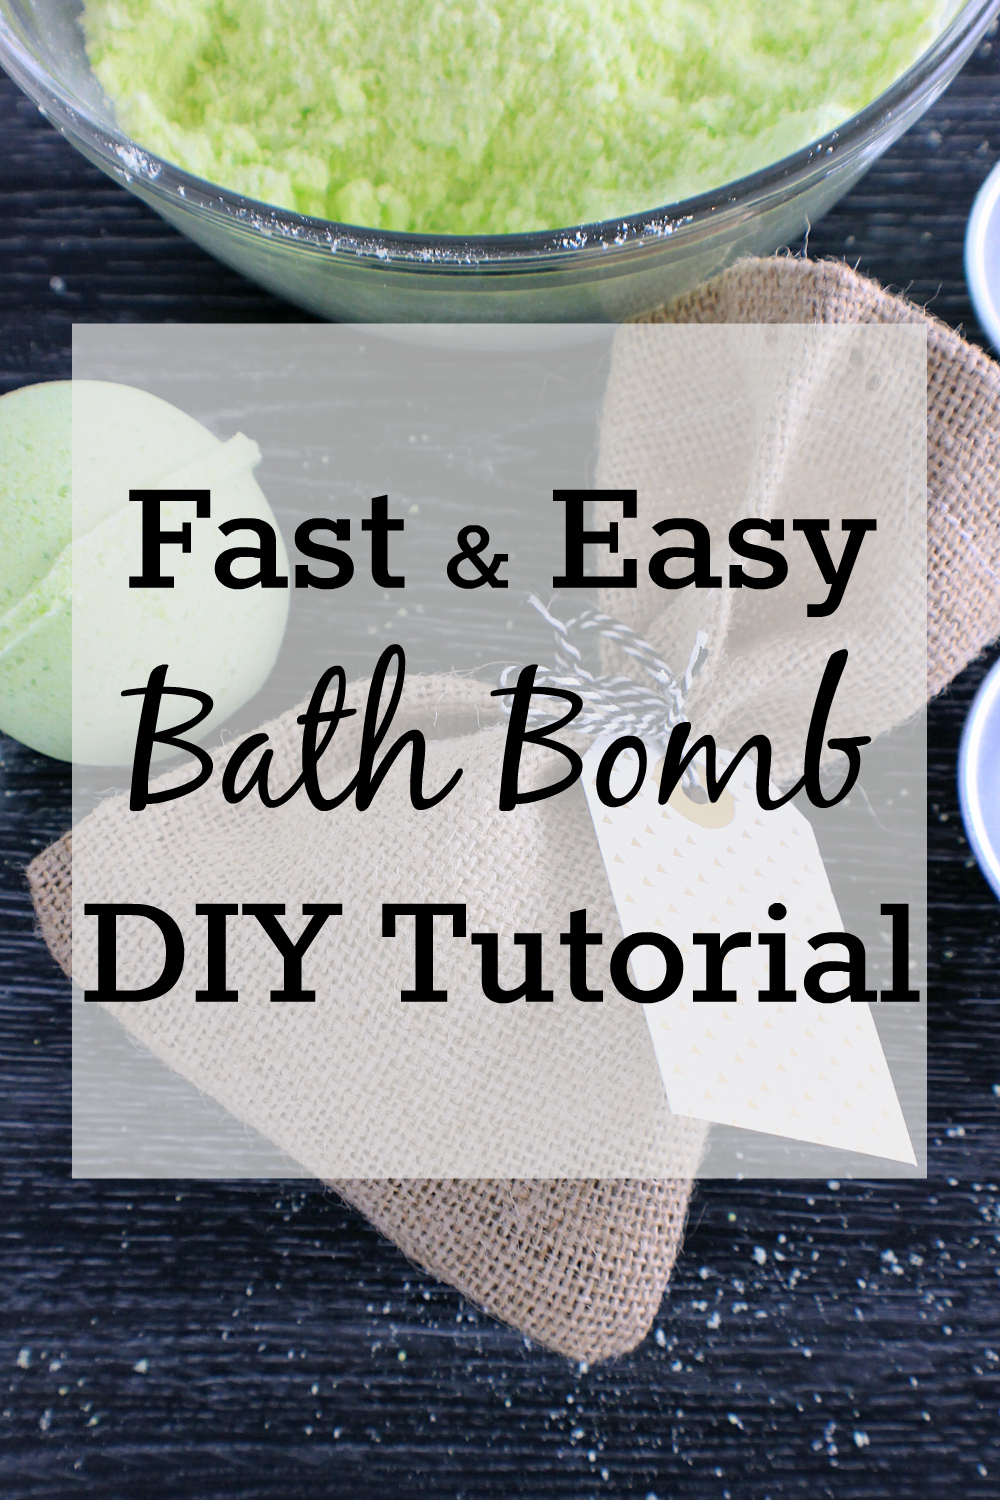 Fast & Easy DIY Bath Bombs Tutorial